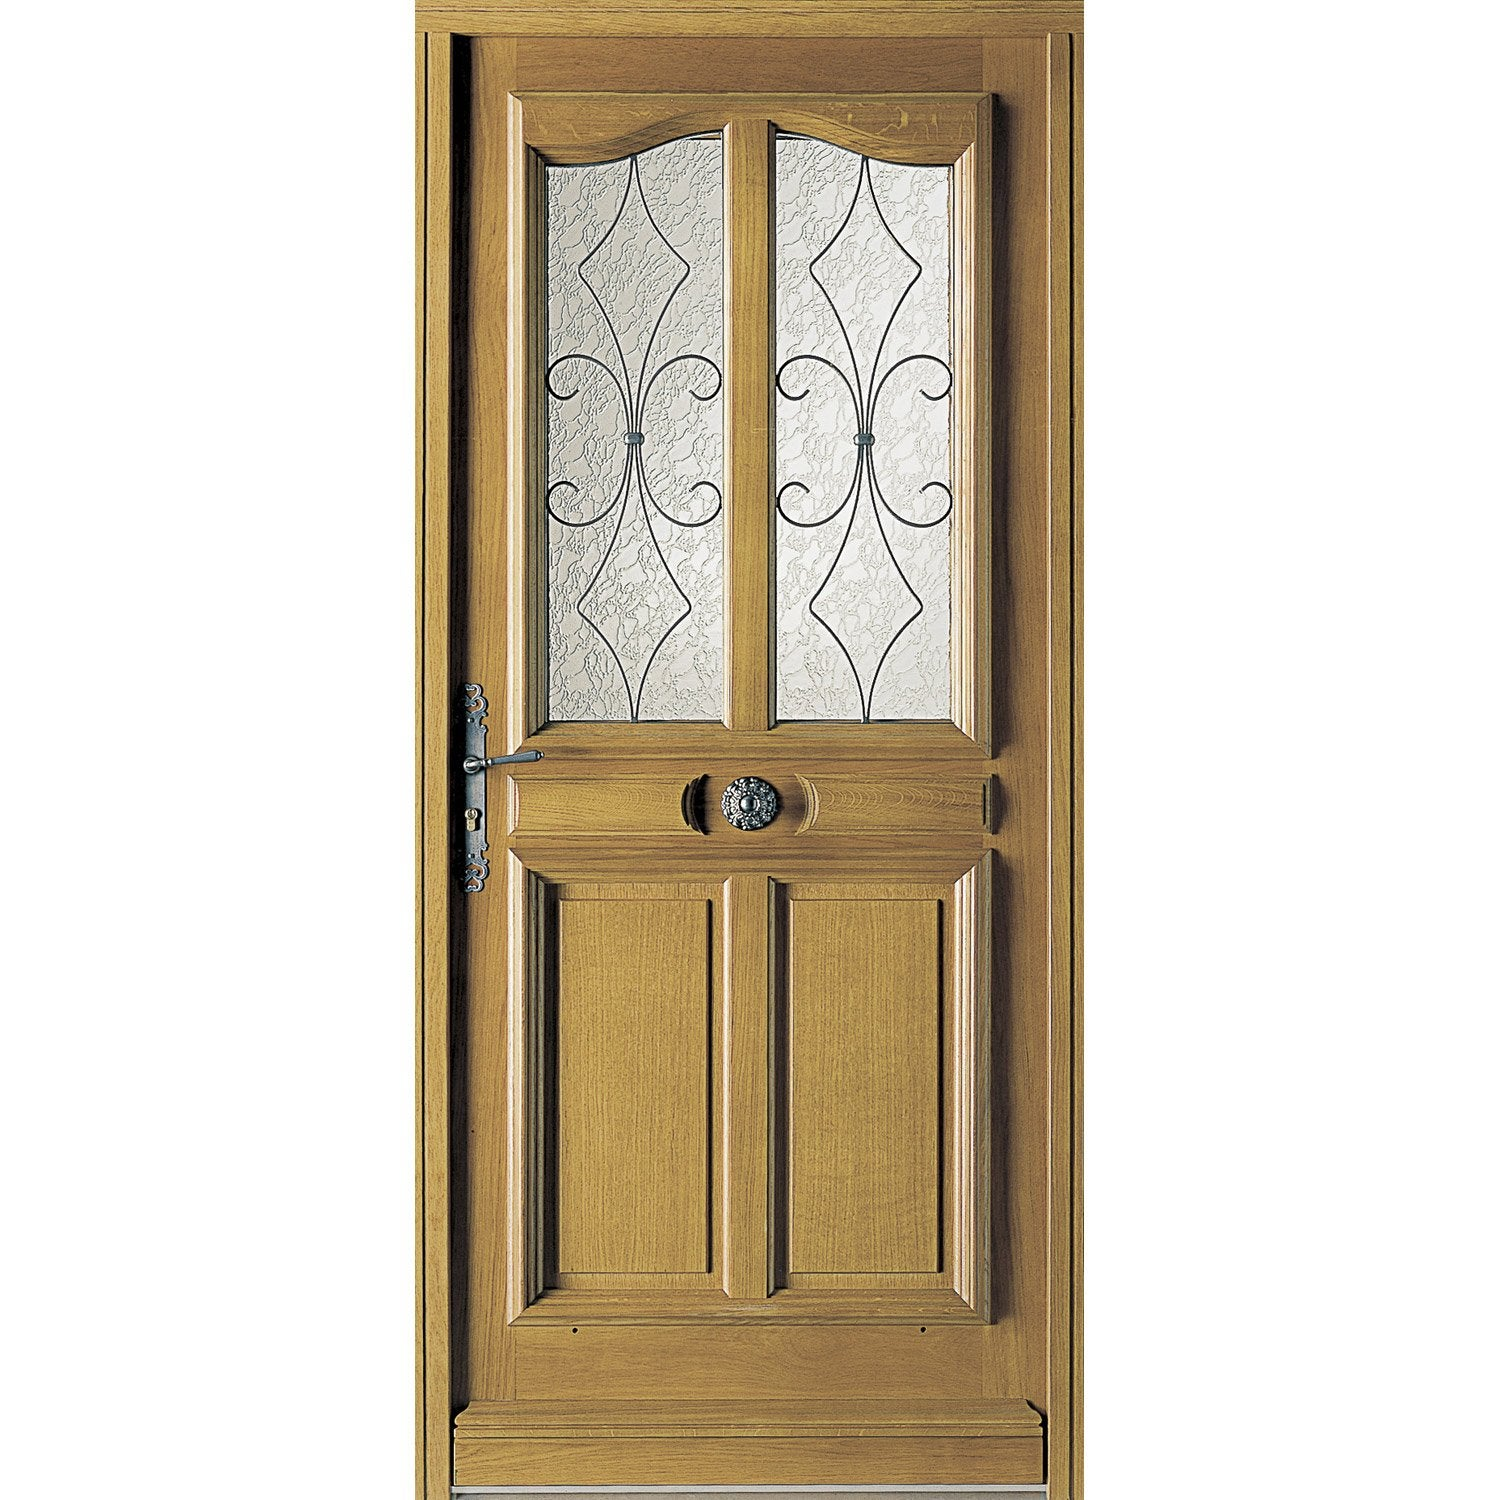 Porte d 39 entr e sur mesure en bois courchevel excellence for Porte sur mesure